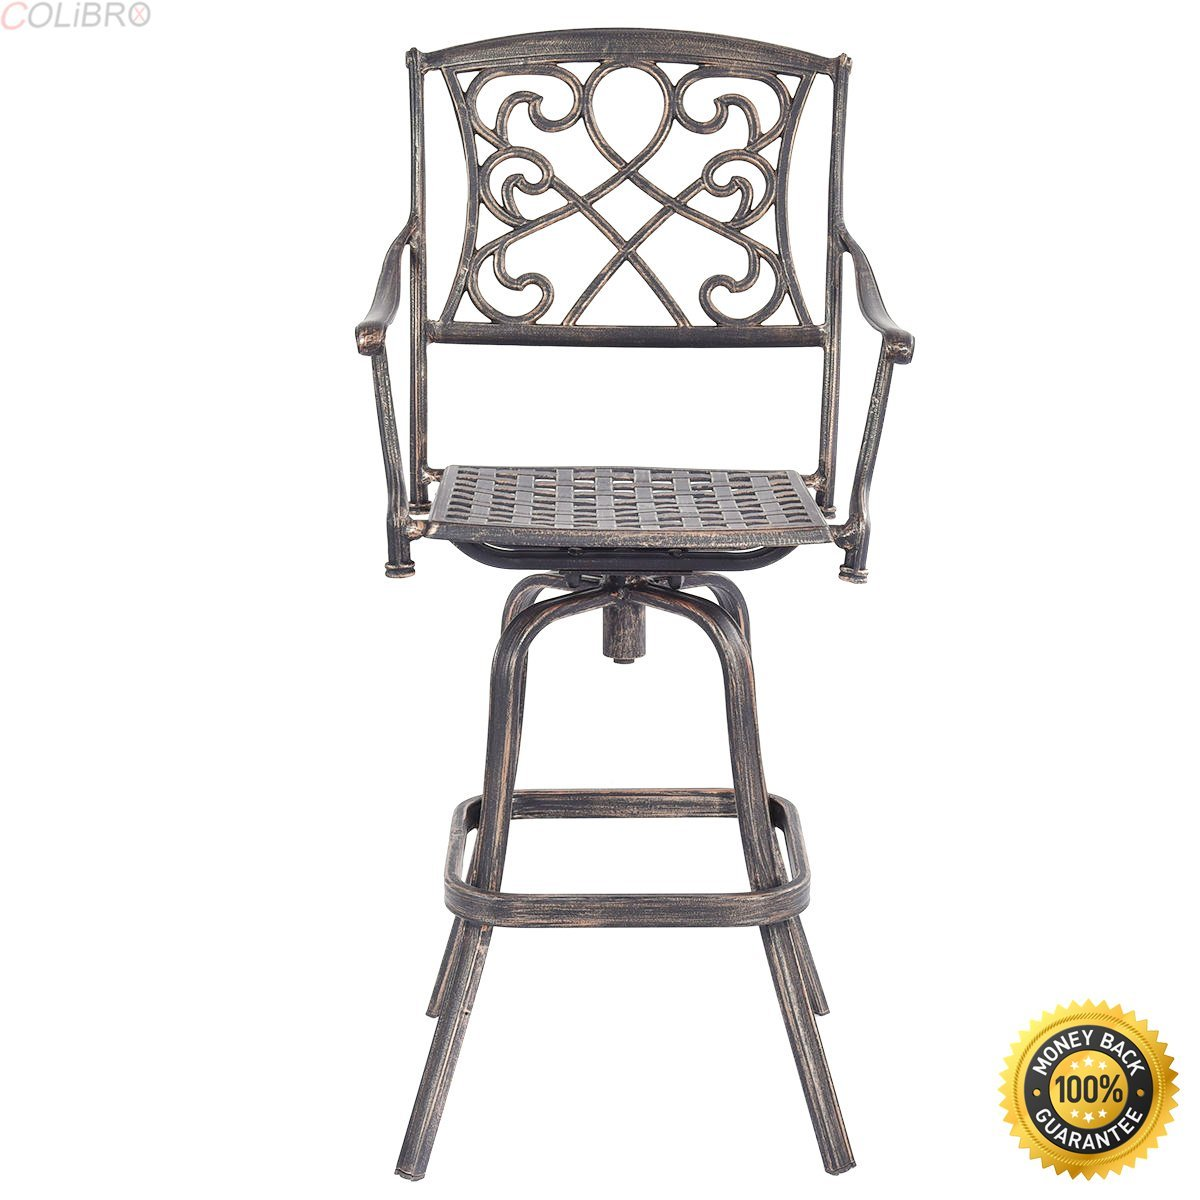 Colibrox cast aluminum swivel bar stool patio furniture antique copper design outdoor new